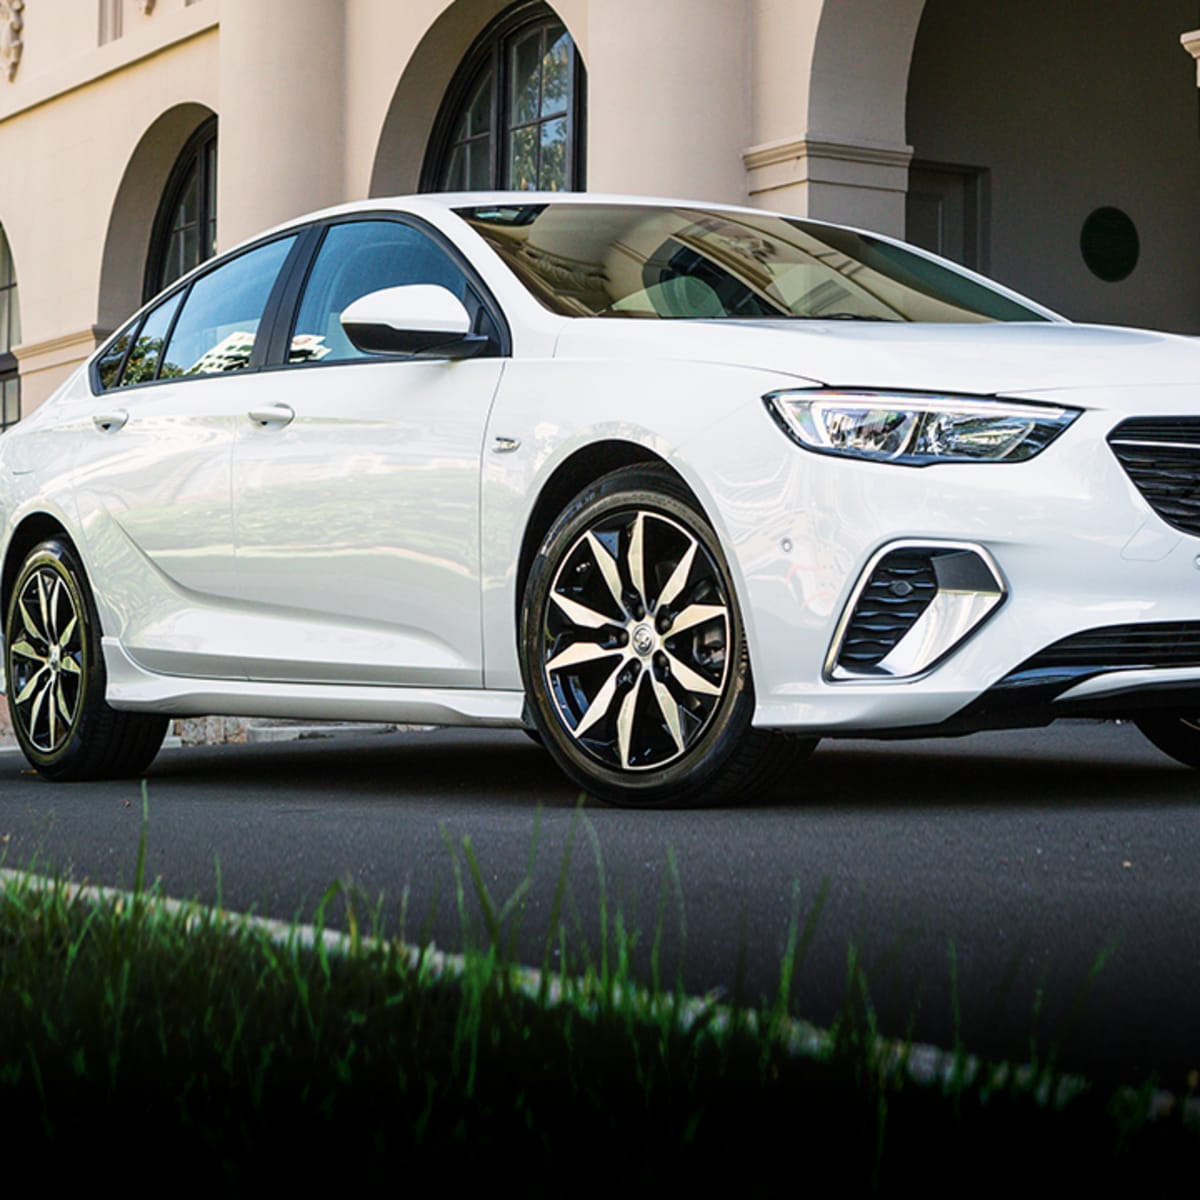 2018 Holden Commodore RS long-term review: Introduction